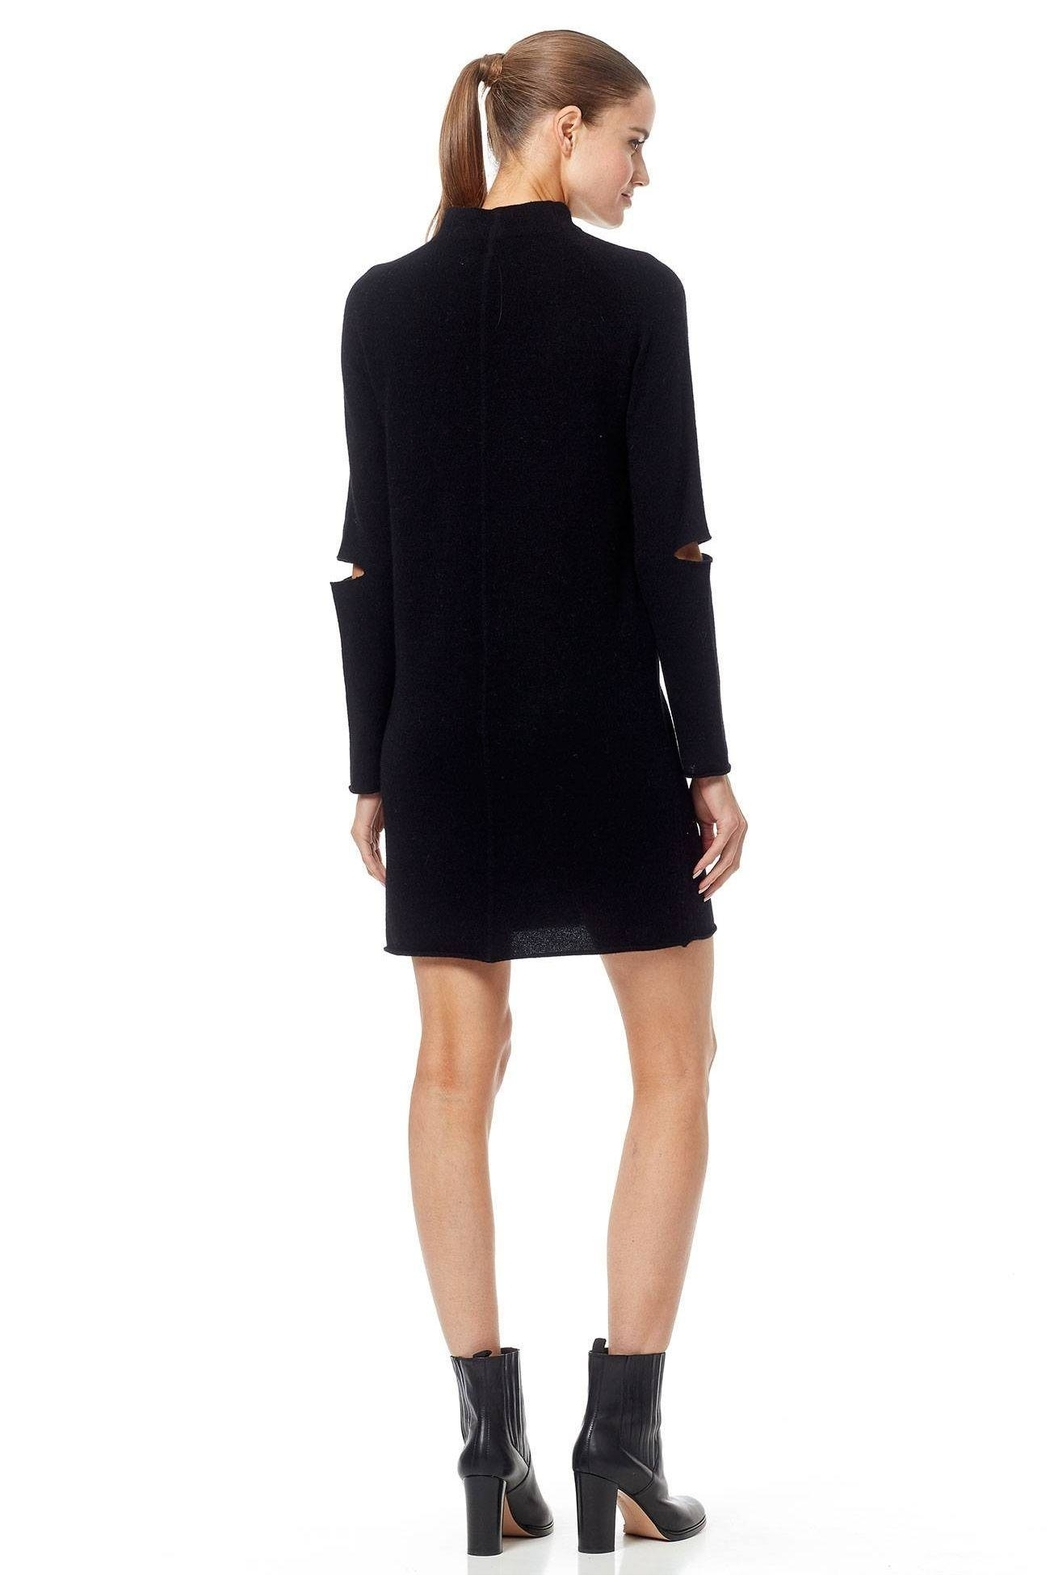 360 Cashmere Lynx Cashmere Sweater - Back Cropped Image